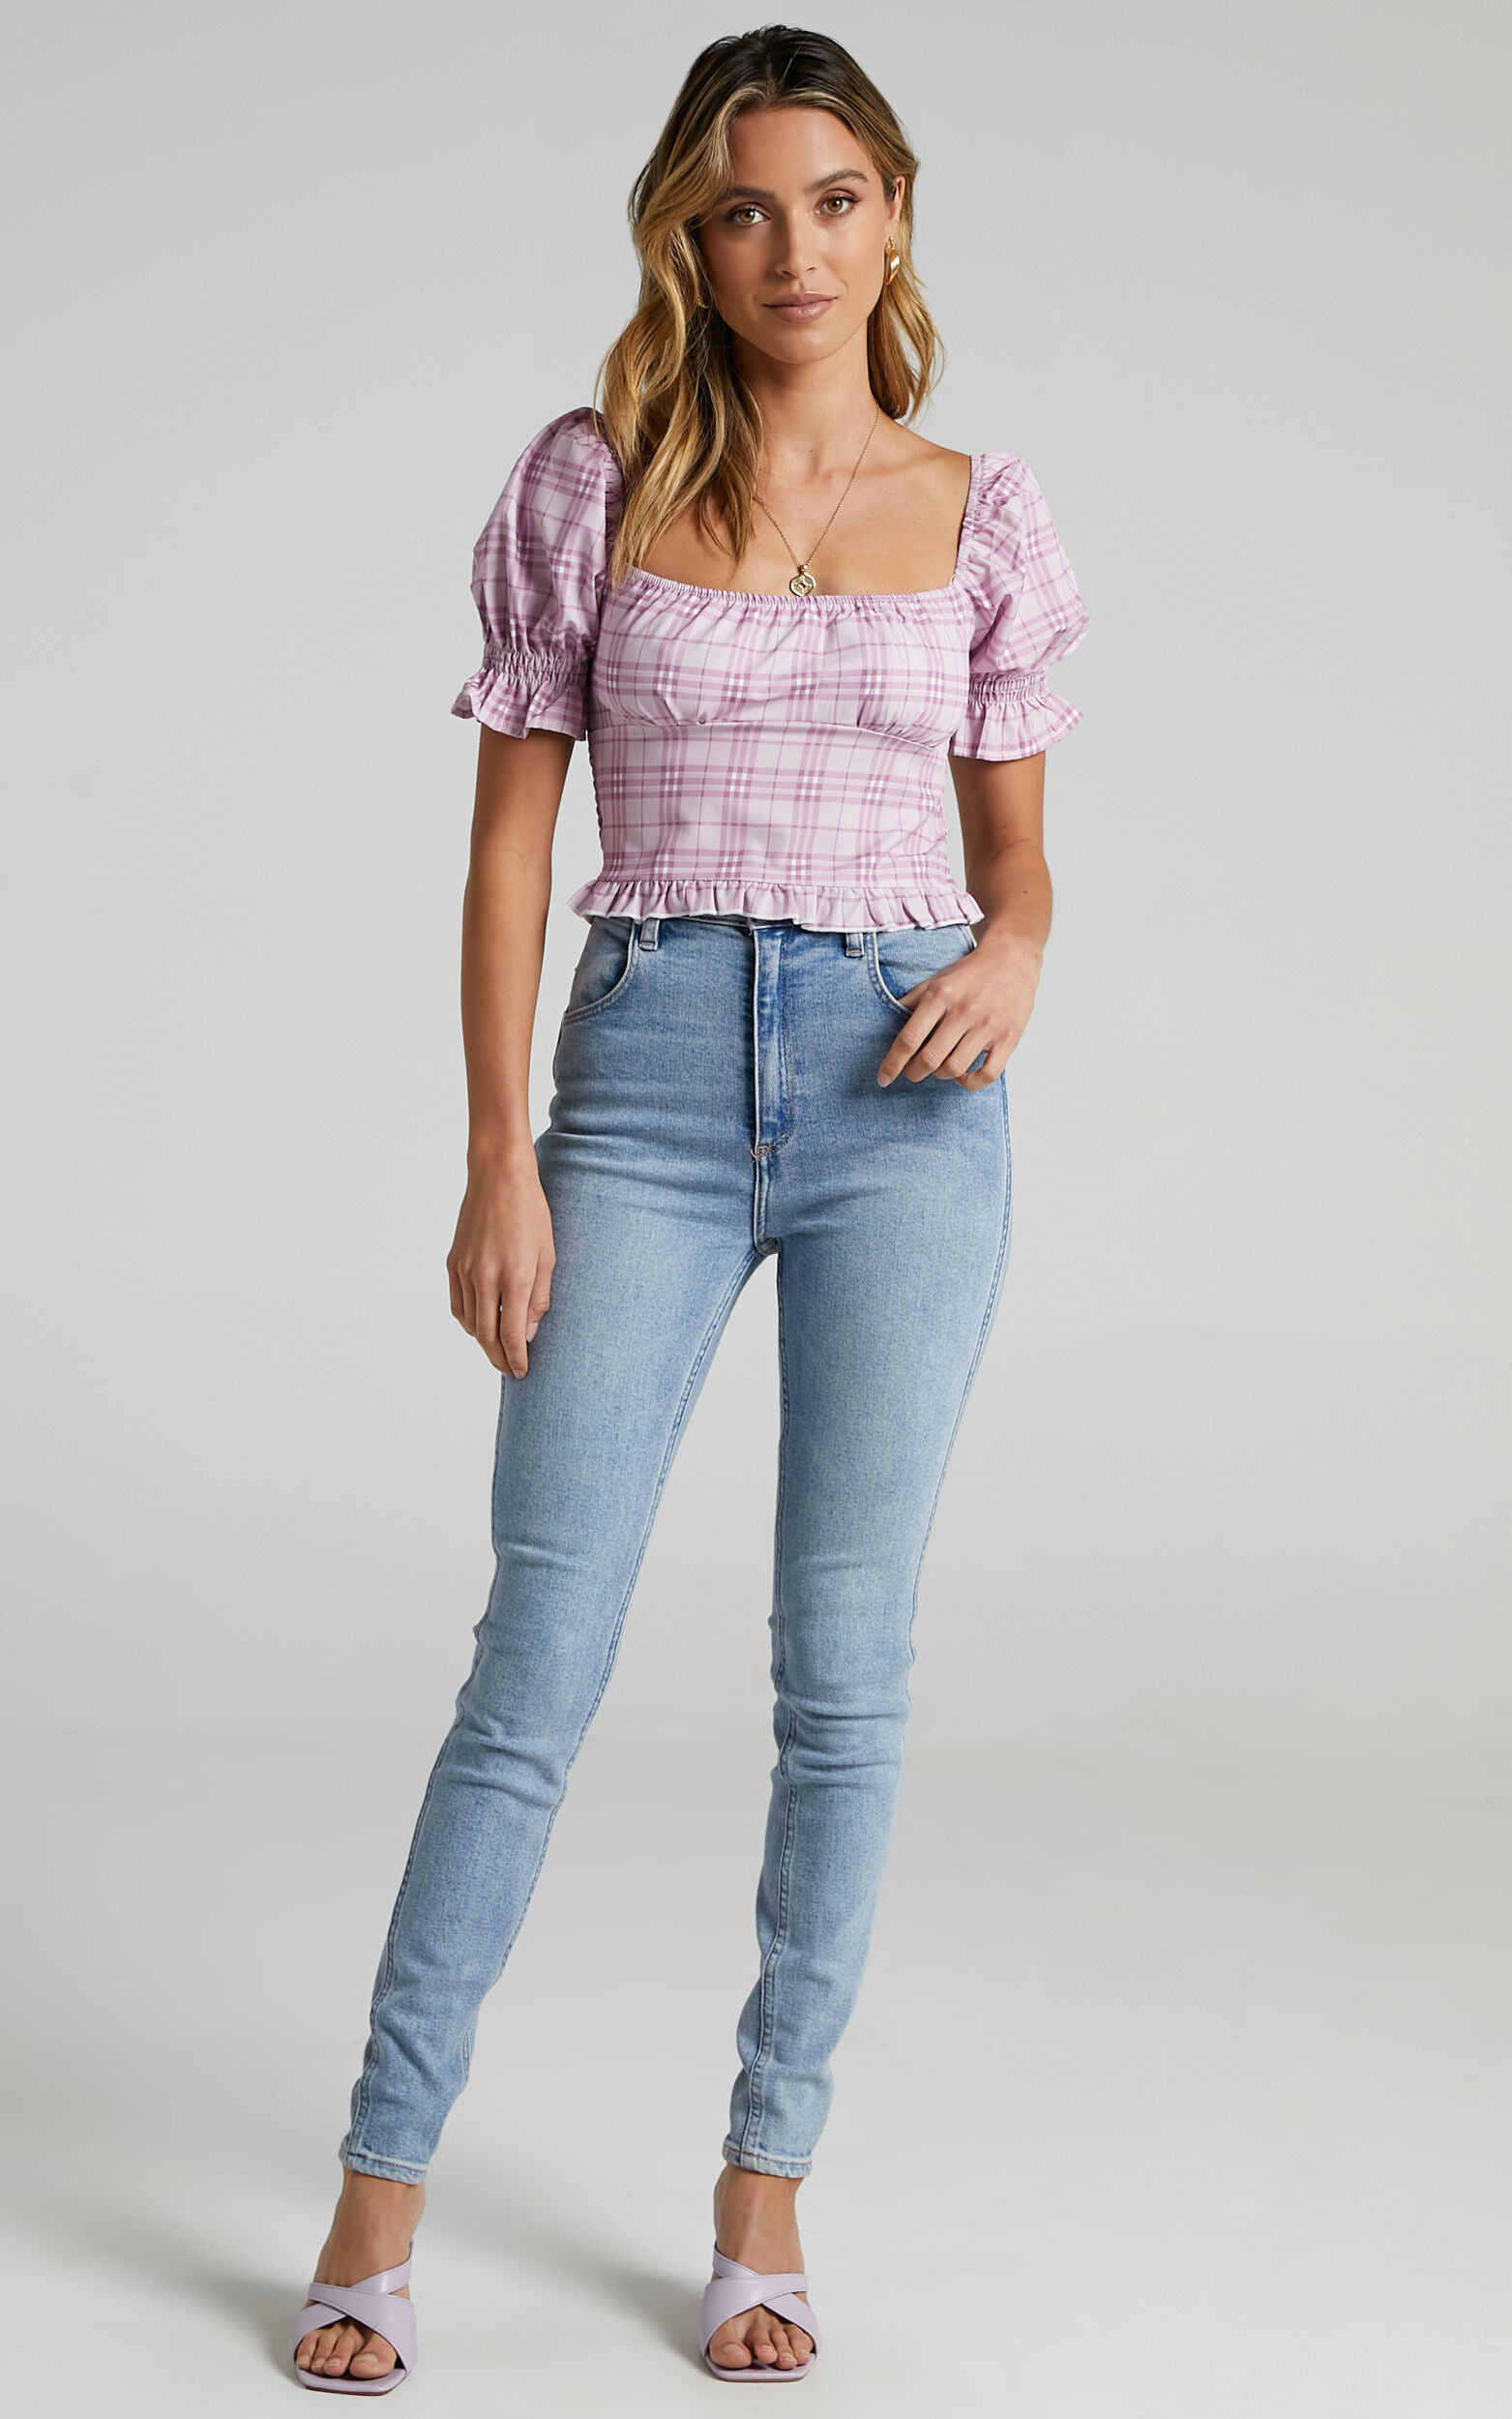 Marianna Top in Pink Check - 08, PNK1, super-hi-res image number null